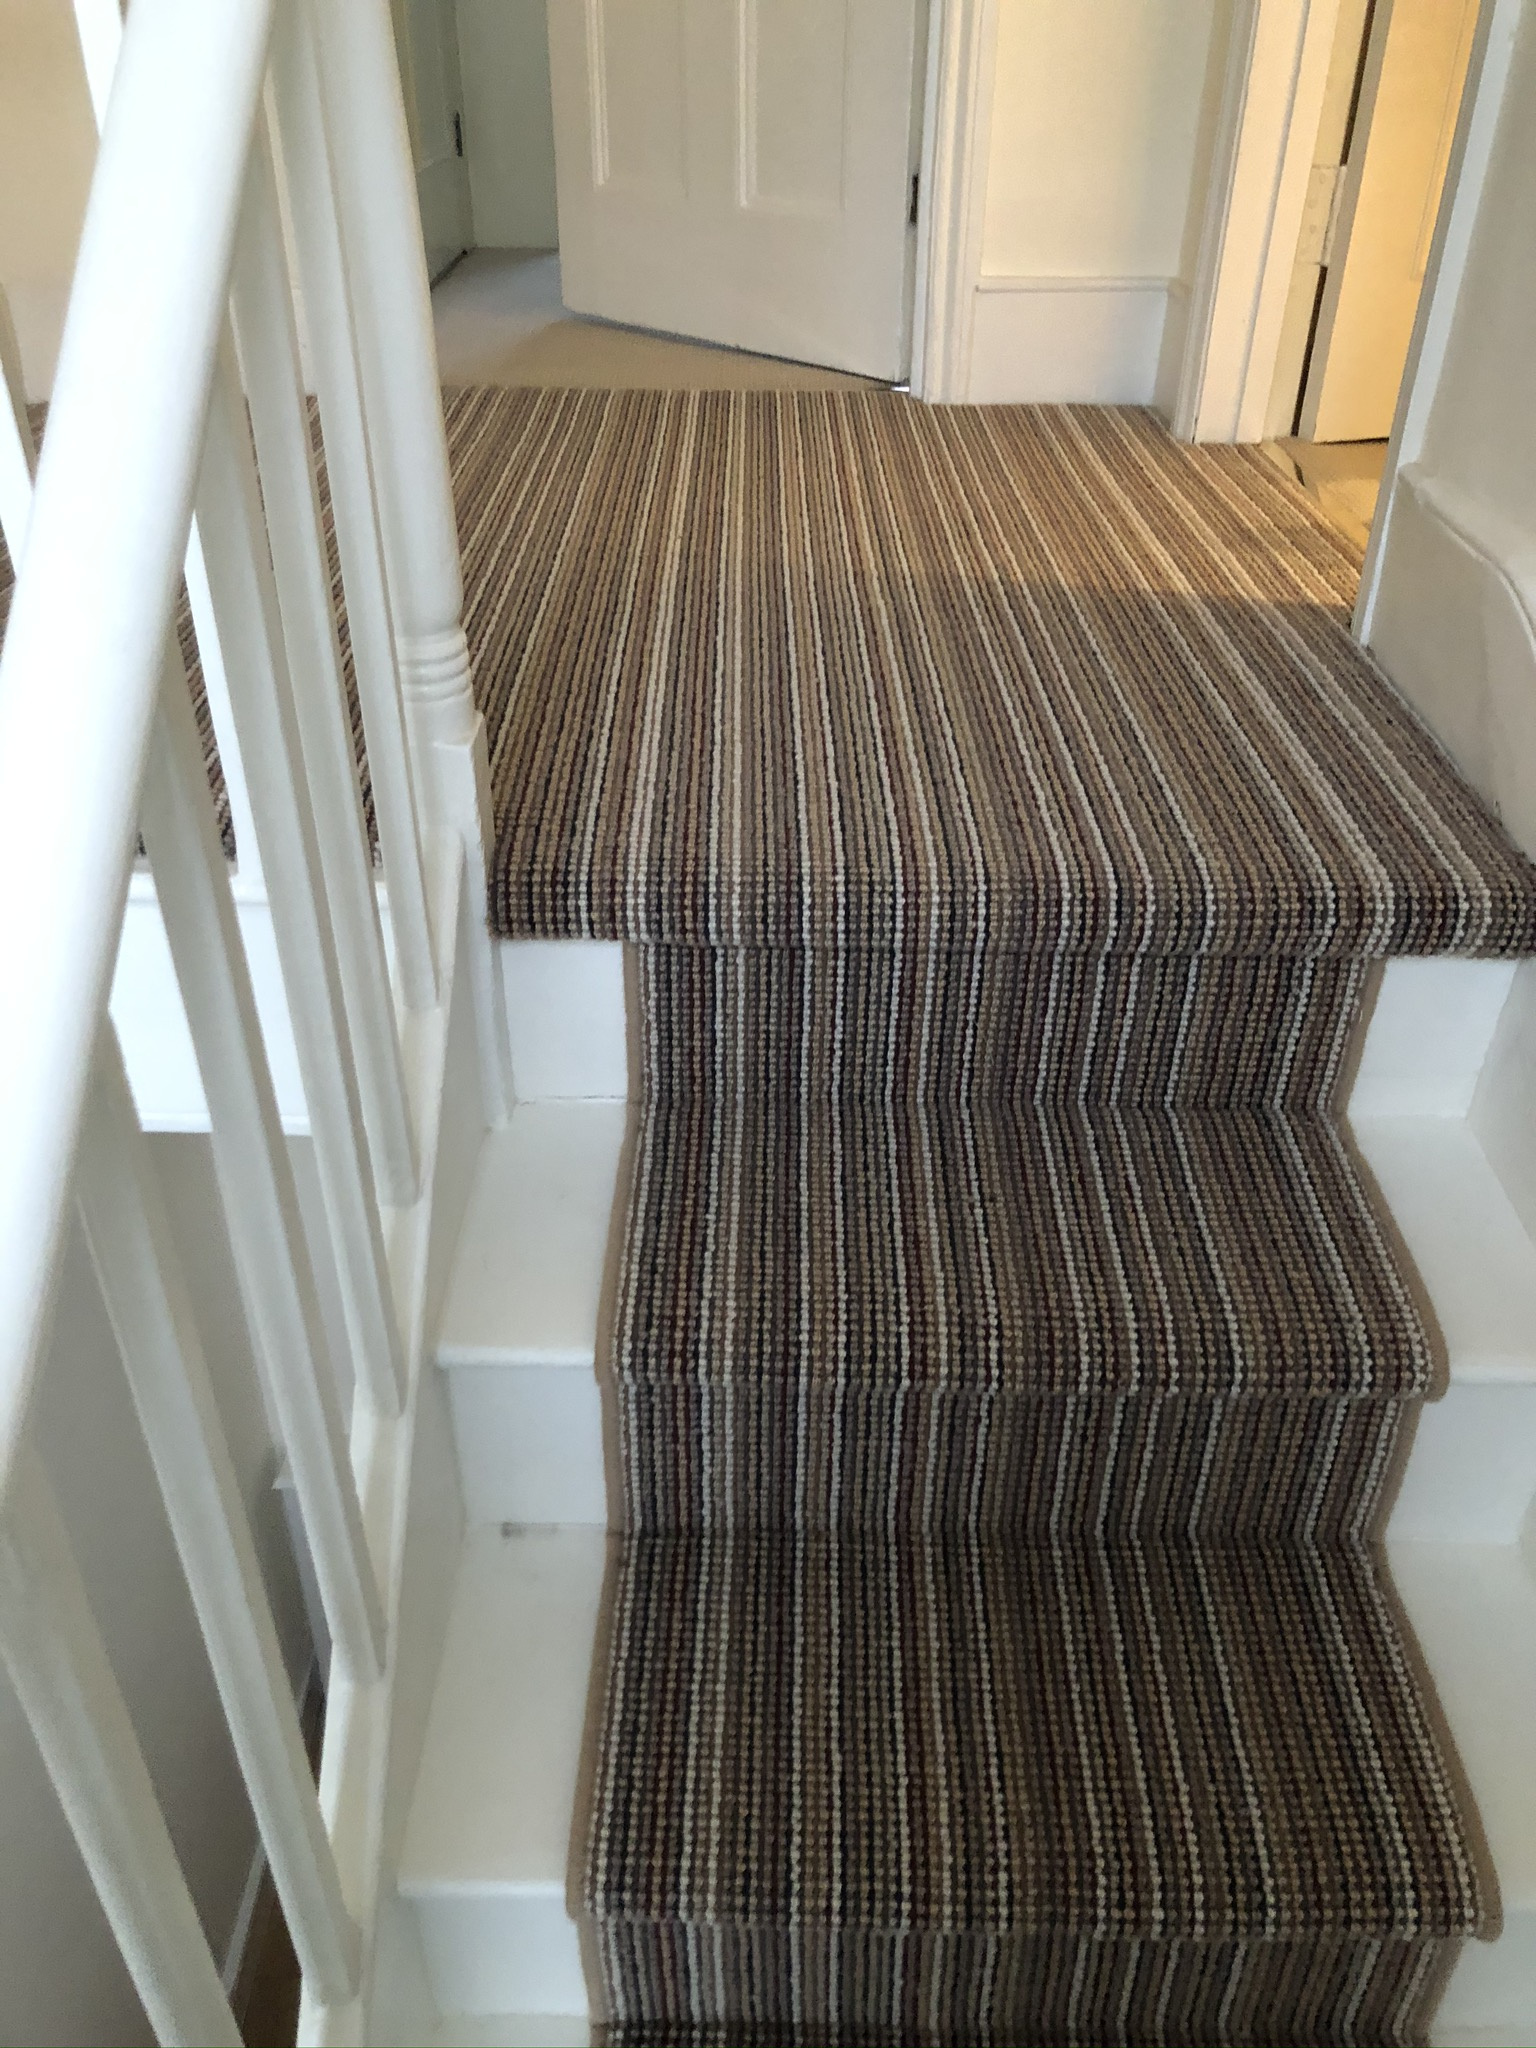 Multicolour Stripe Carpet Installation in Islington 2